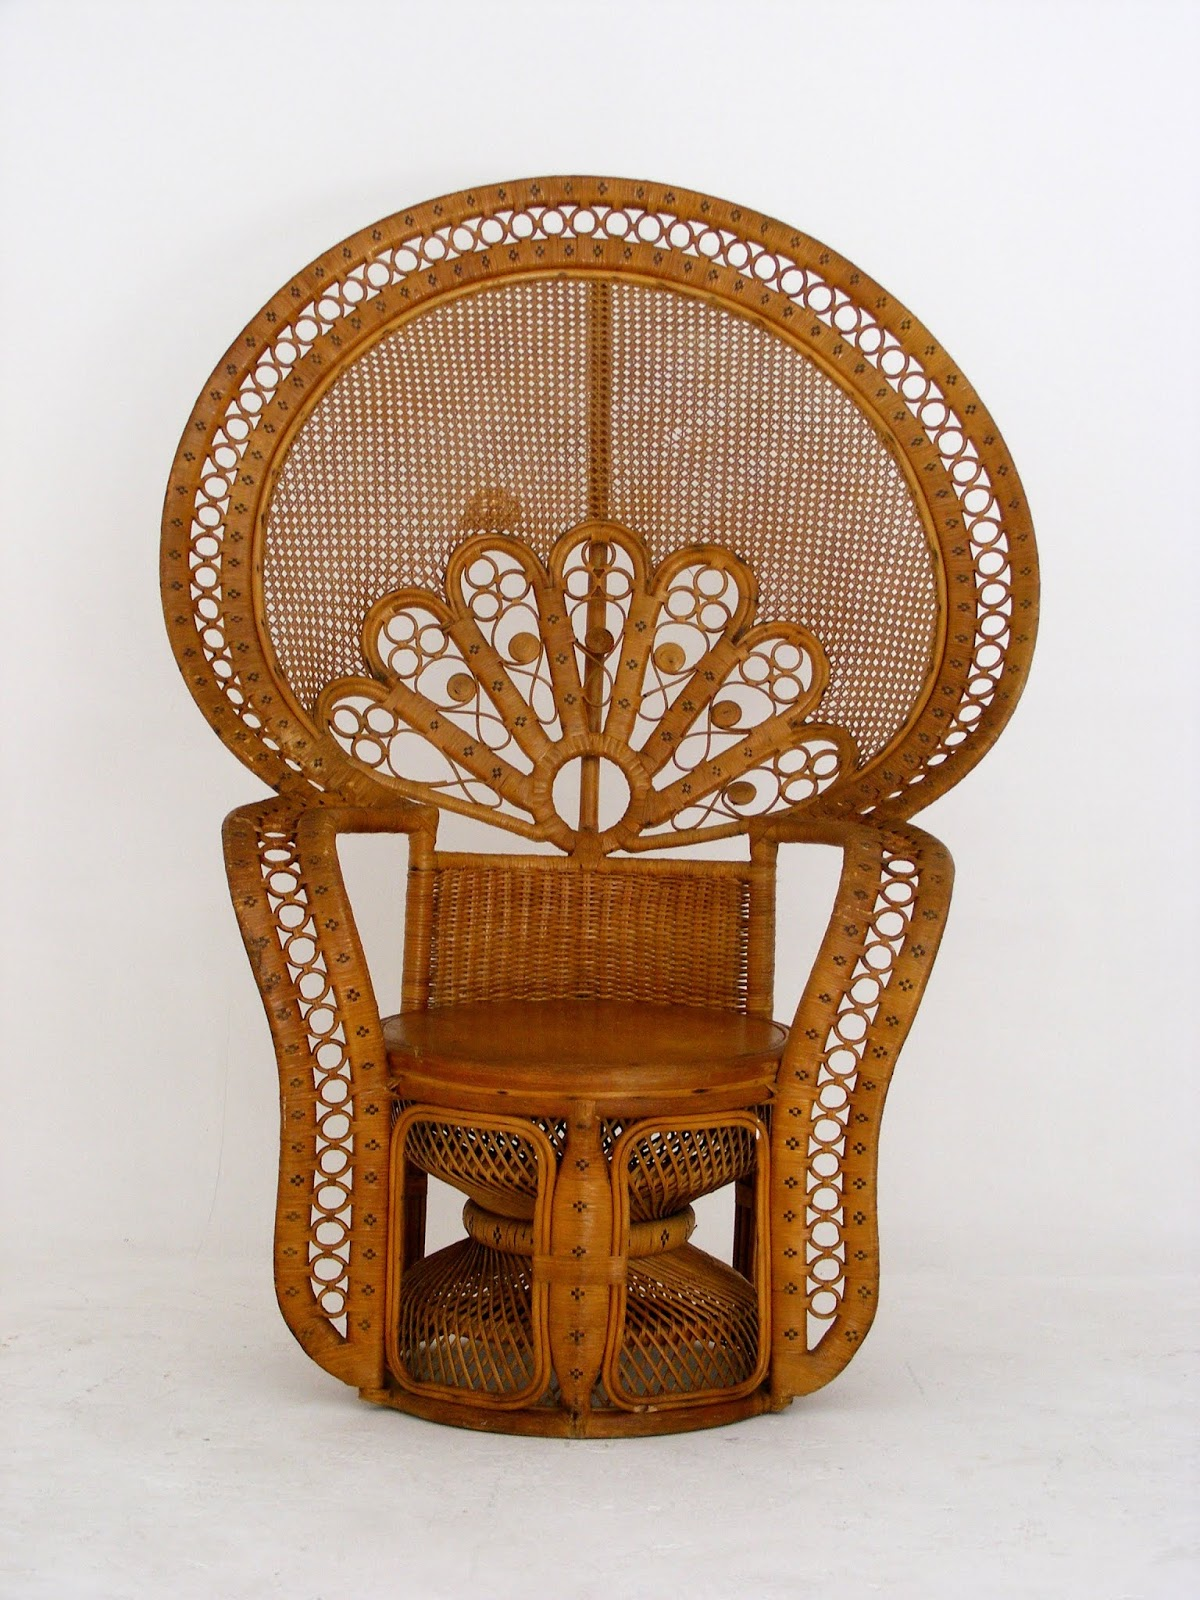 Vintage Peacock Chair Massage Chicago Vamp Furniture A At 05 October 2018 It S Big And The Seat Is Wooden Itself Very Sturdy With An Old Repair On Back See Photos Width 121cm Depth 73cm Height Of